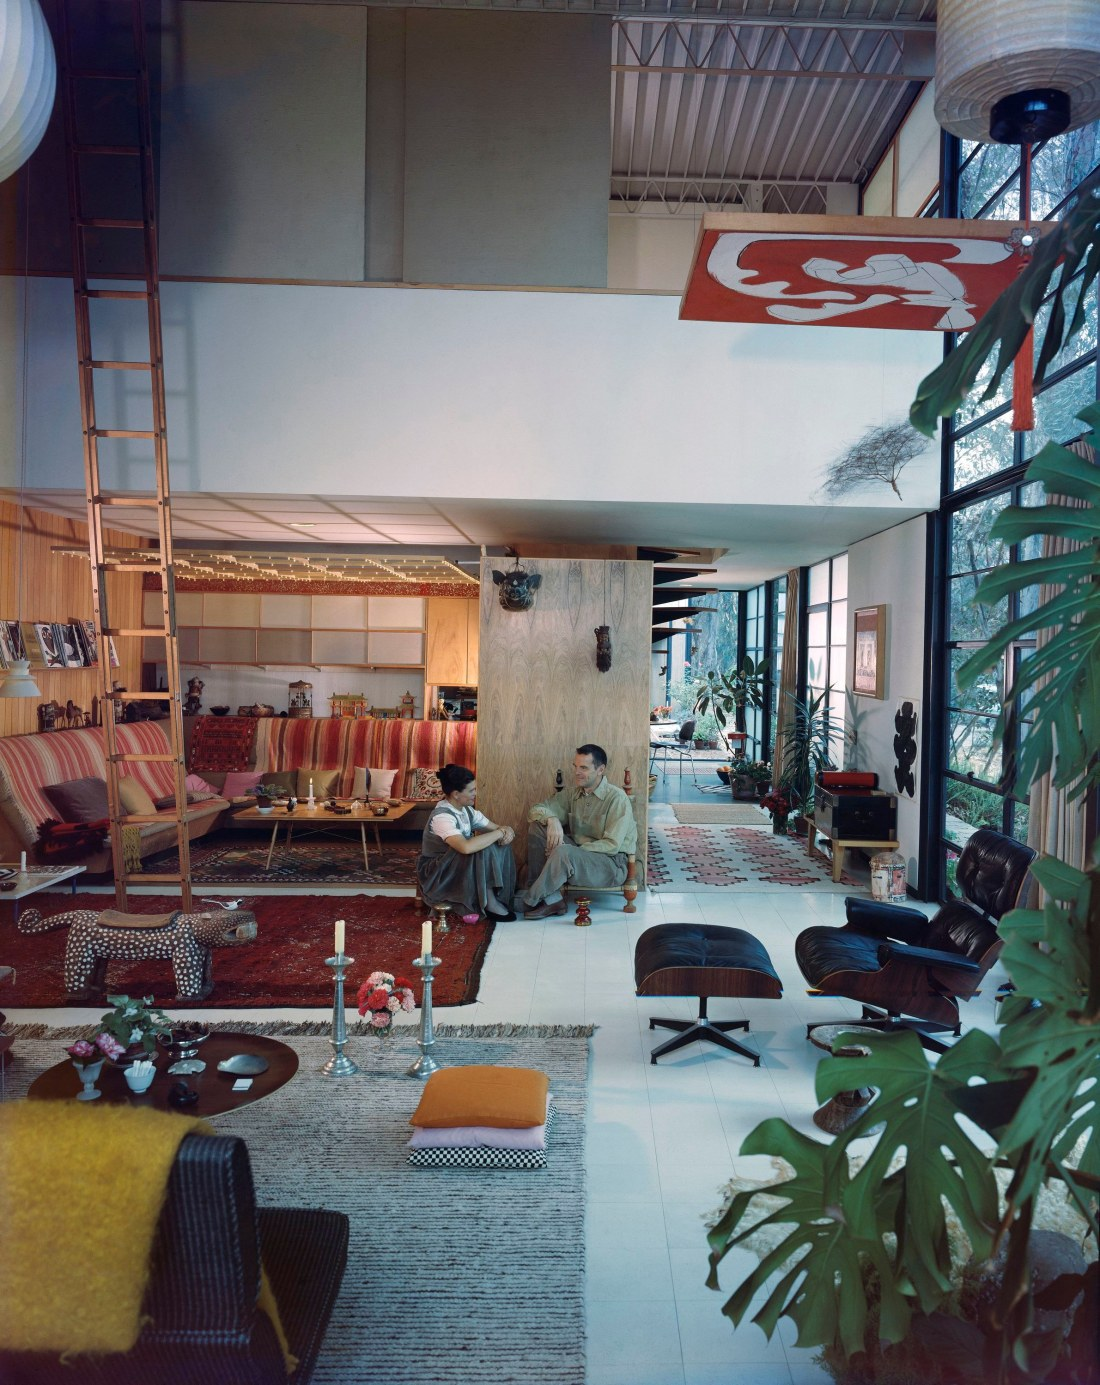 06. An Eames Celebration. Charles and Ray in the living room of the Eames House, 1958